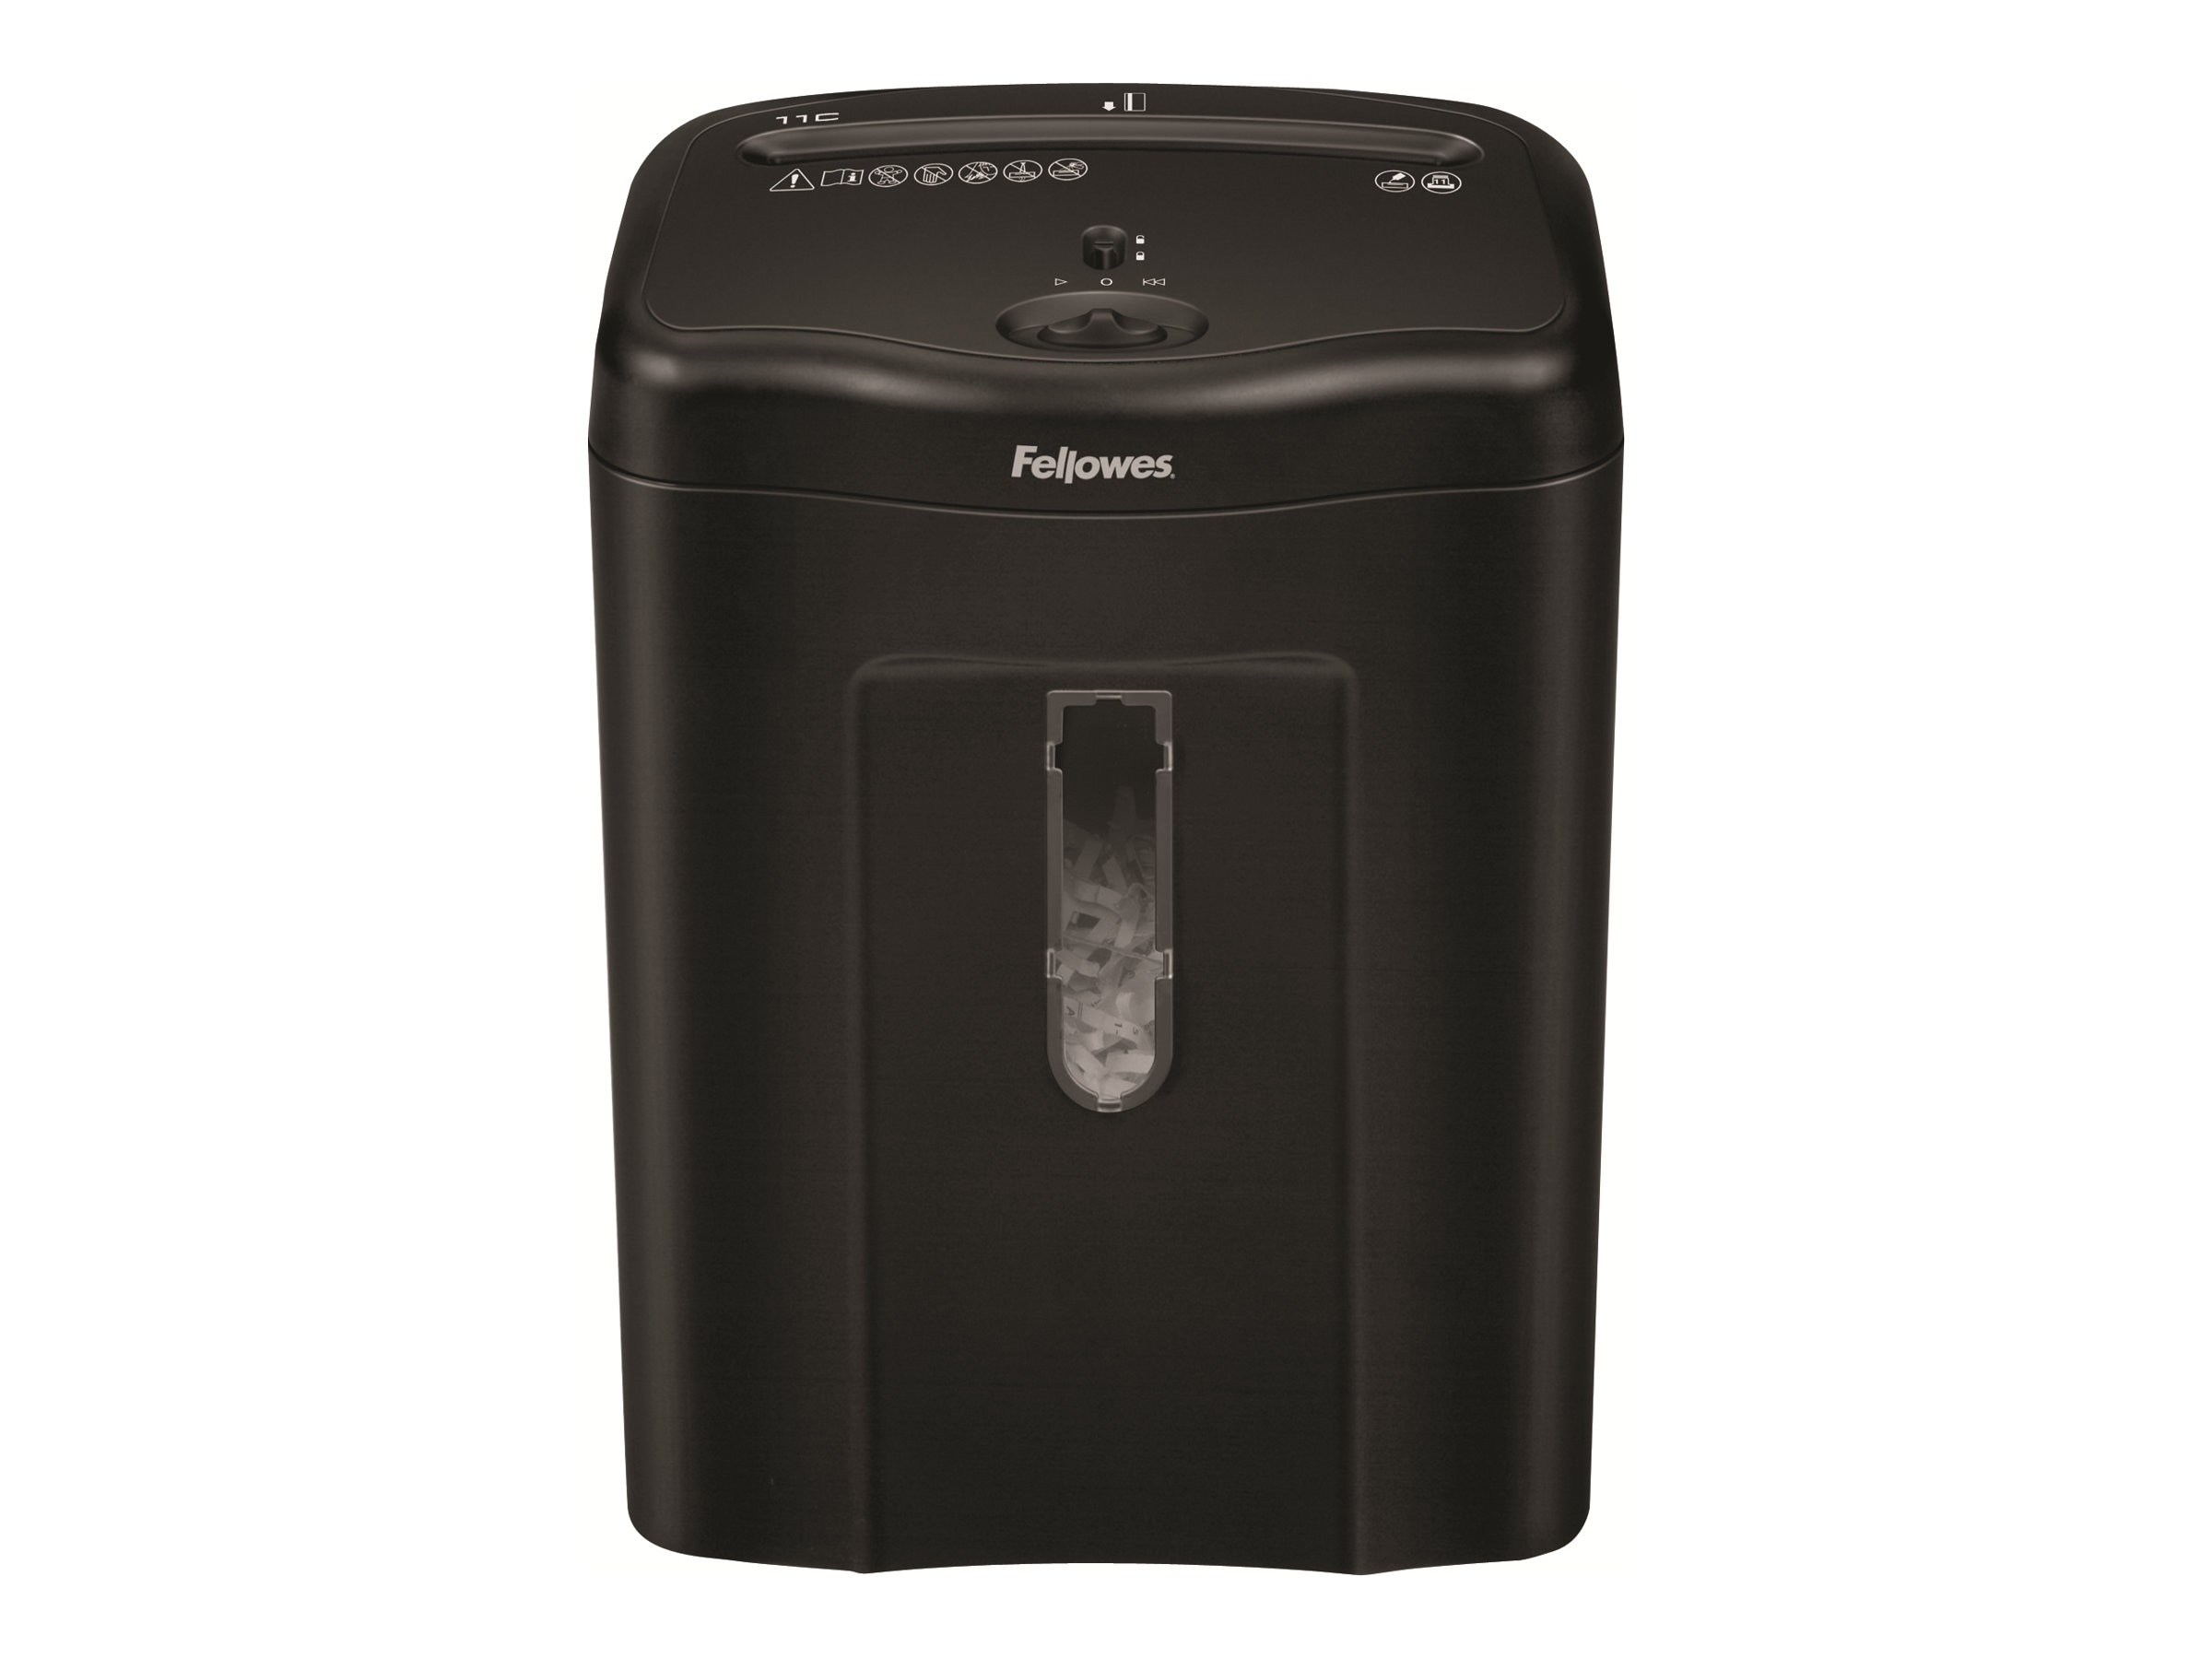 Fellowes 4350001 Image 2